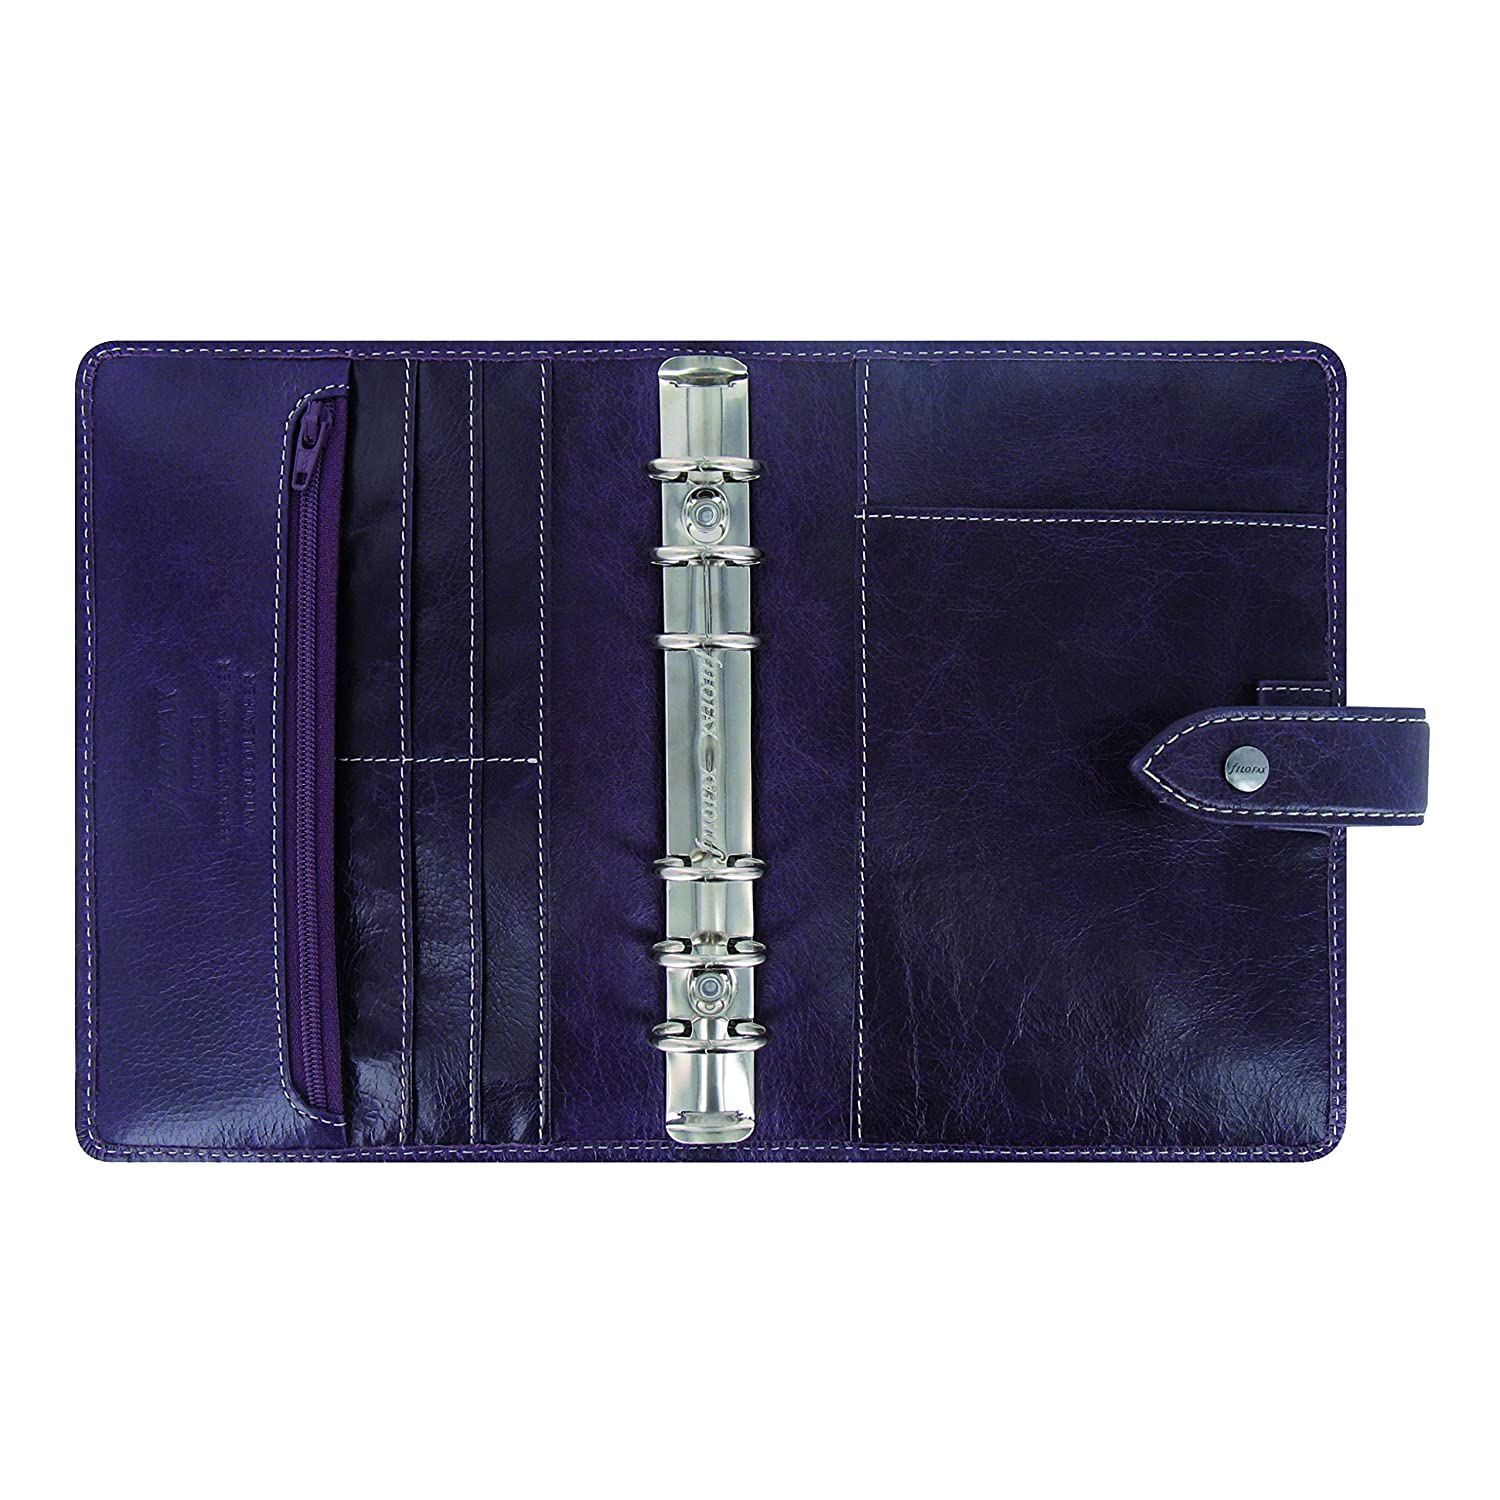 Filofax 2019 Personal Malden Organizer, Leather, Purple, Paper Size 6.75 x 3.75 inches (C025850-19)